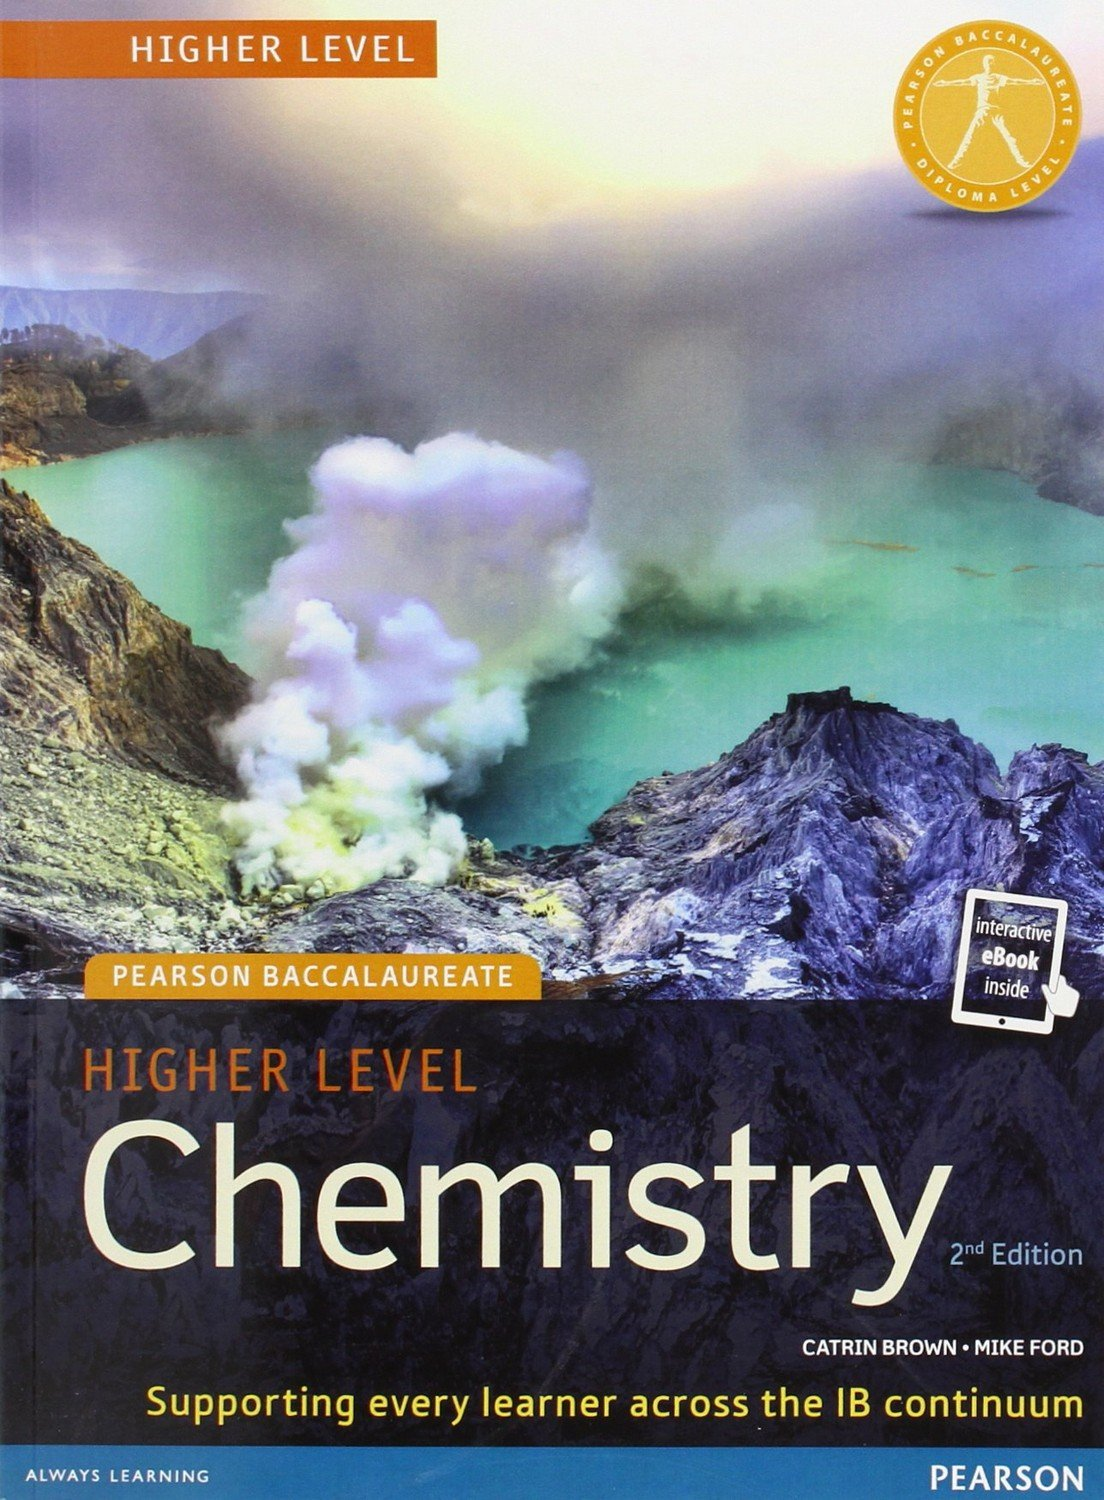 Captivating Pearson Baccalaureate Chemistry Higher Level 2nd Edition Print And Online  Edition For The IB Diploma (Pearson International Baccalaureate Diploma: ...